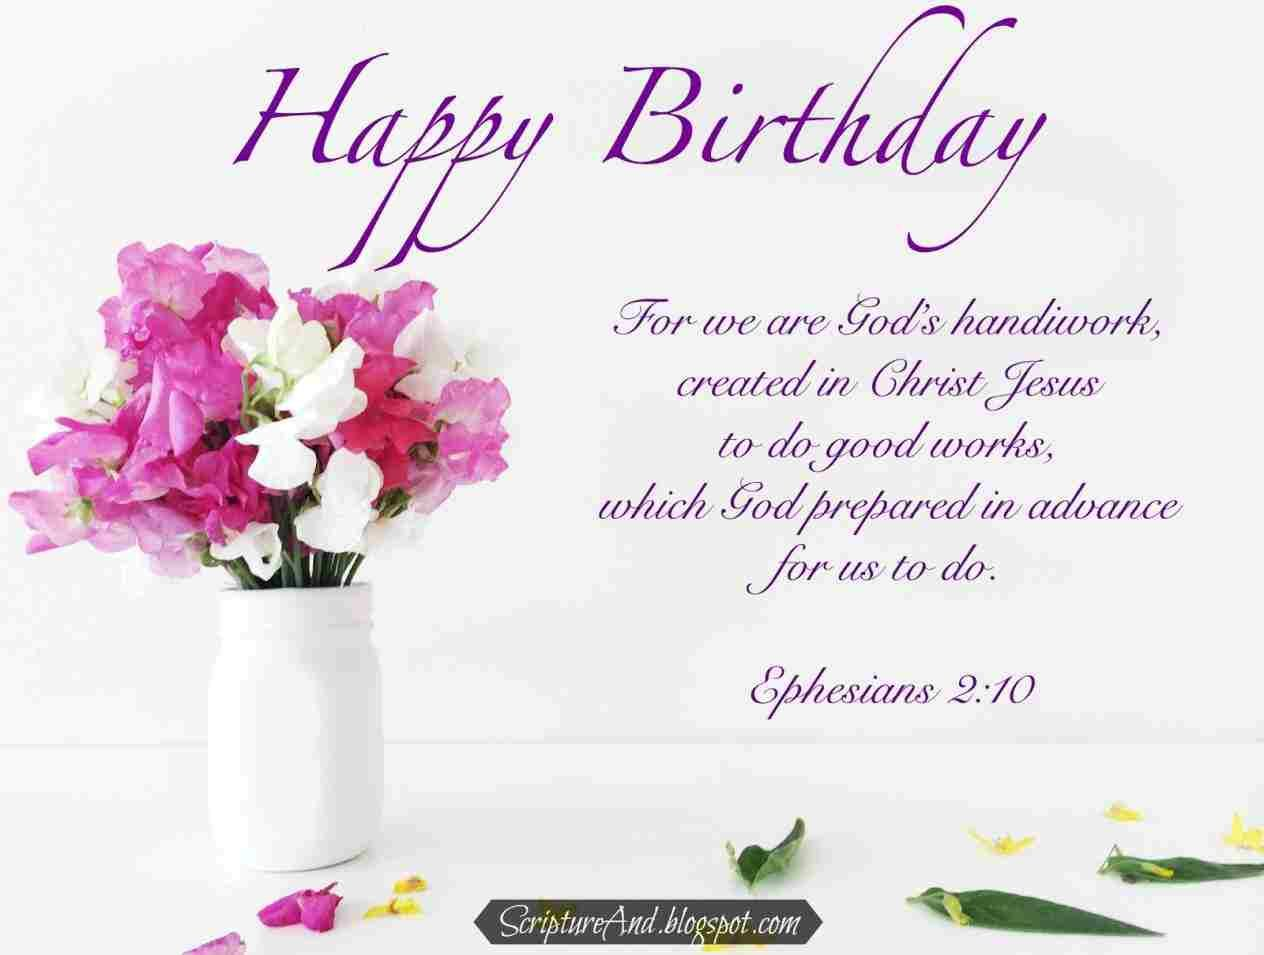 details this birthday card . bible quotes 004. birthday wishes in